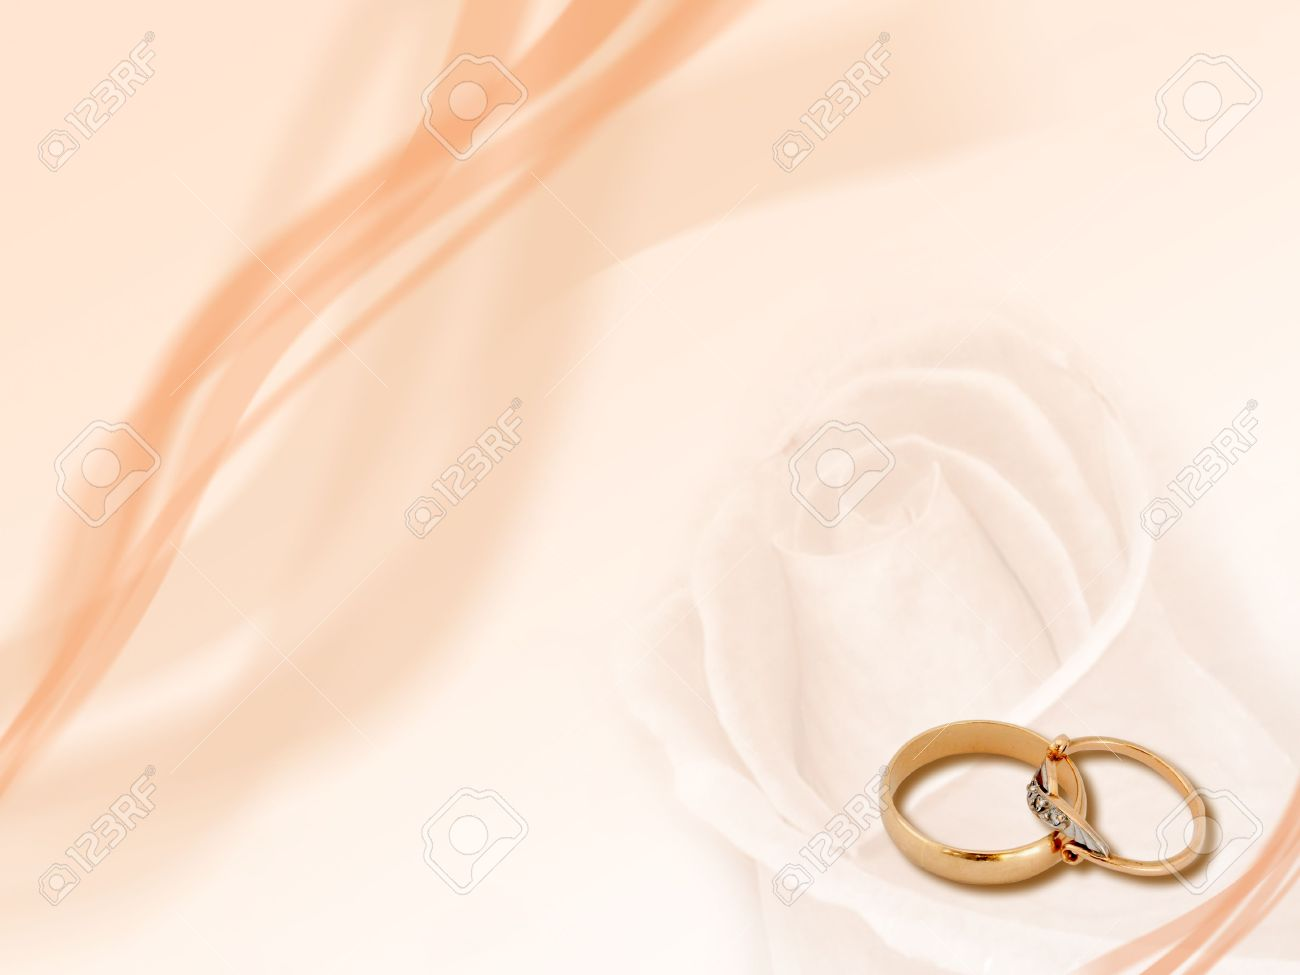 Design Two Wedding Golden Rings On Smooth Background Stock Photo